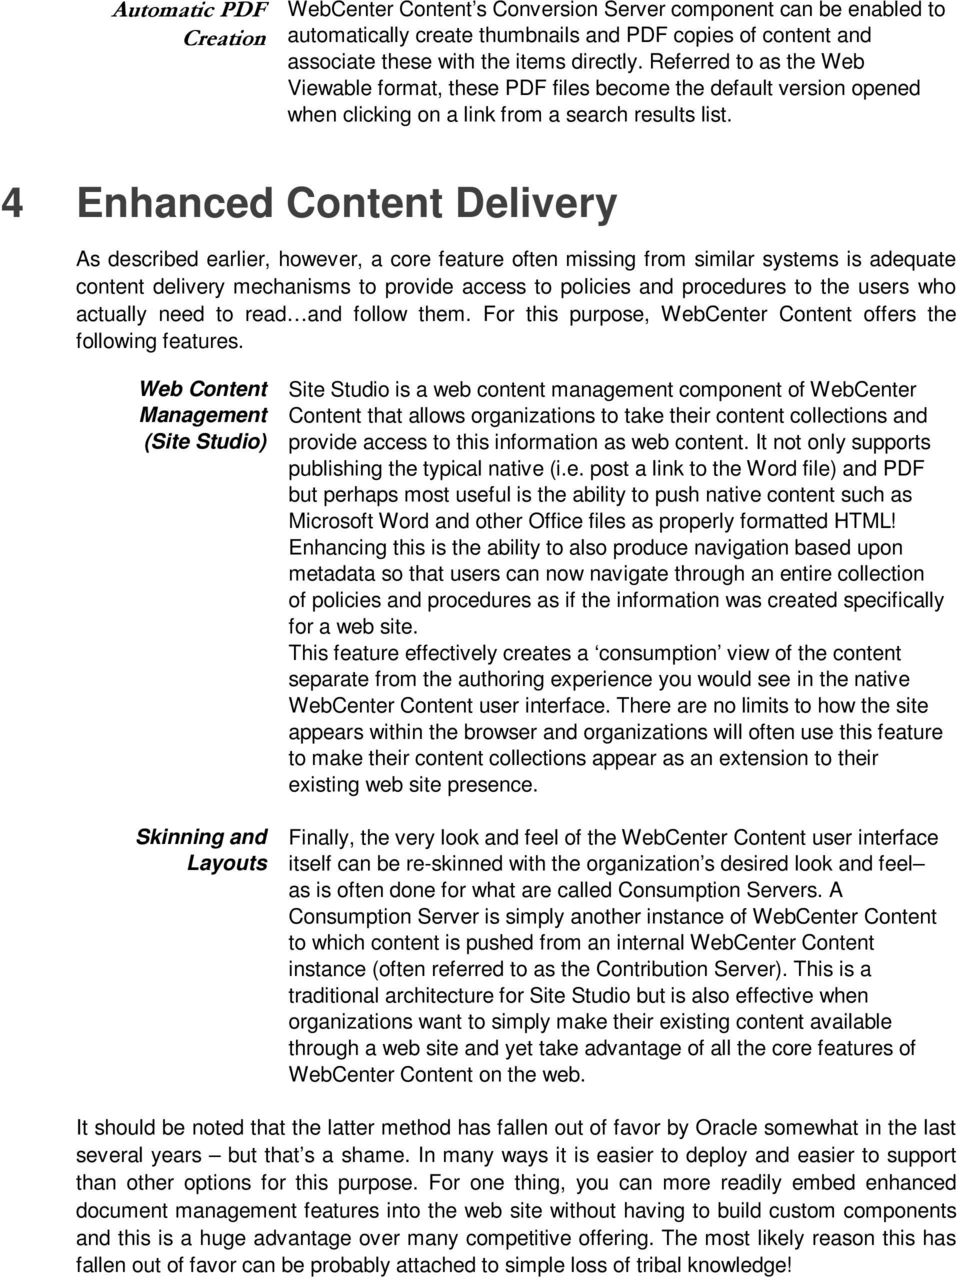 4 Enhanced Content Delivery As described earlier, however, a core feature often missing from similar systems is adequate content delivery mechanisms to provide access to policies and procedures to